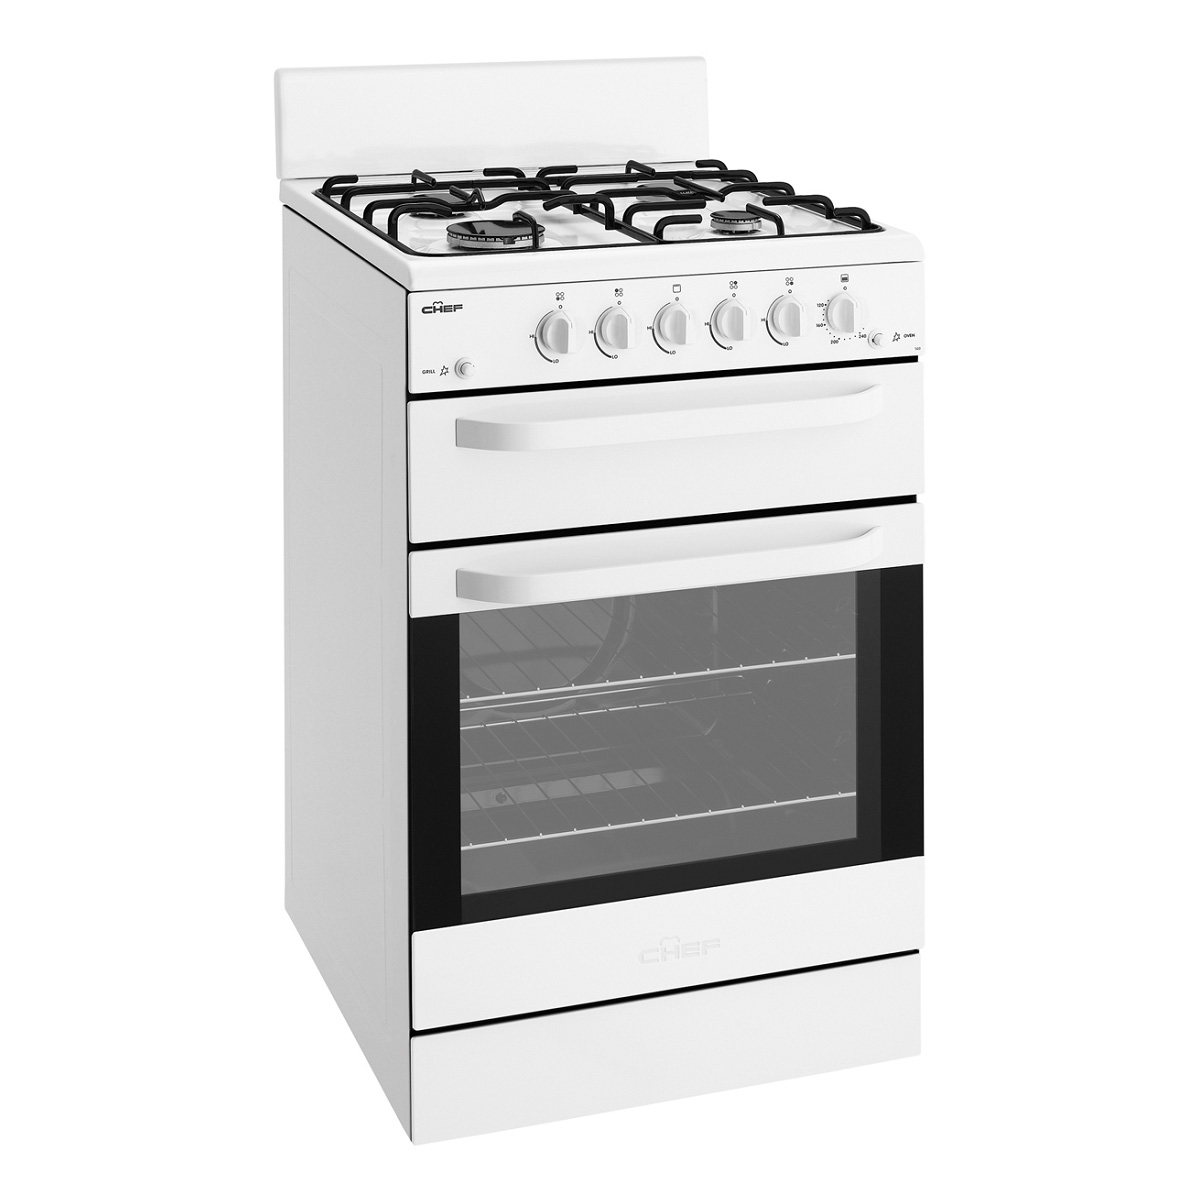 Chef CFG515WALP Freestanding LPG Gas Oven/Stove